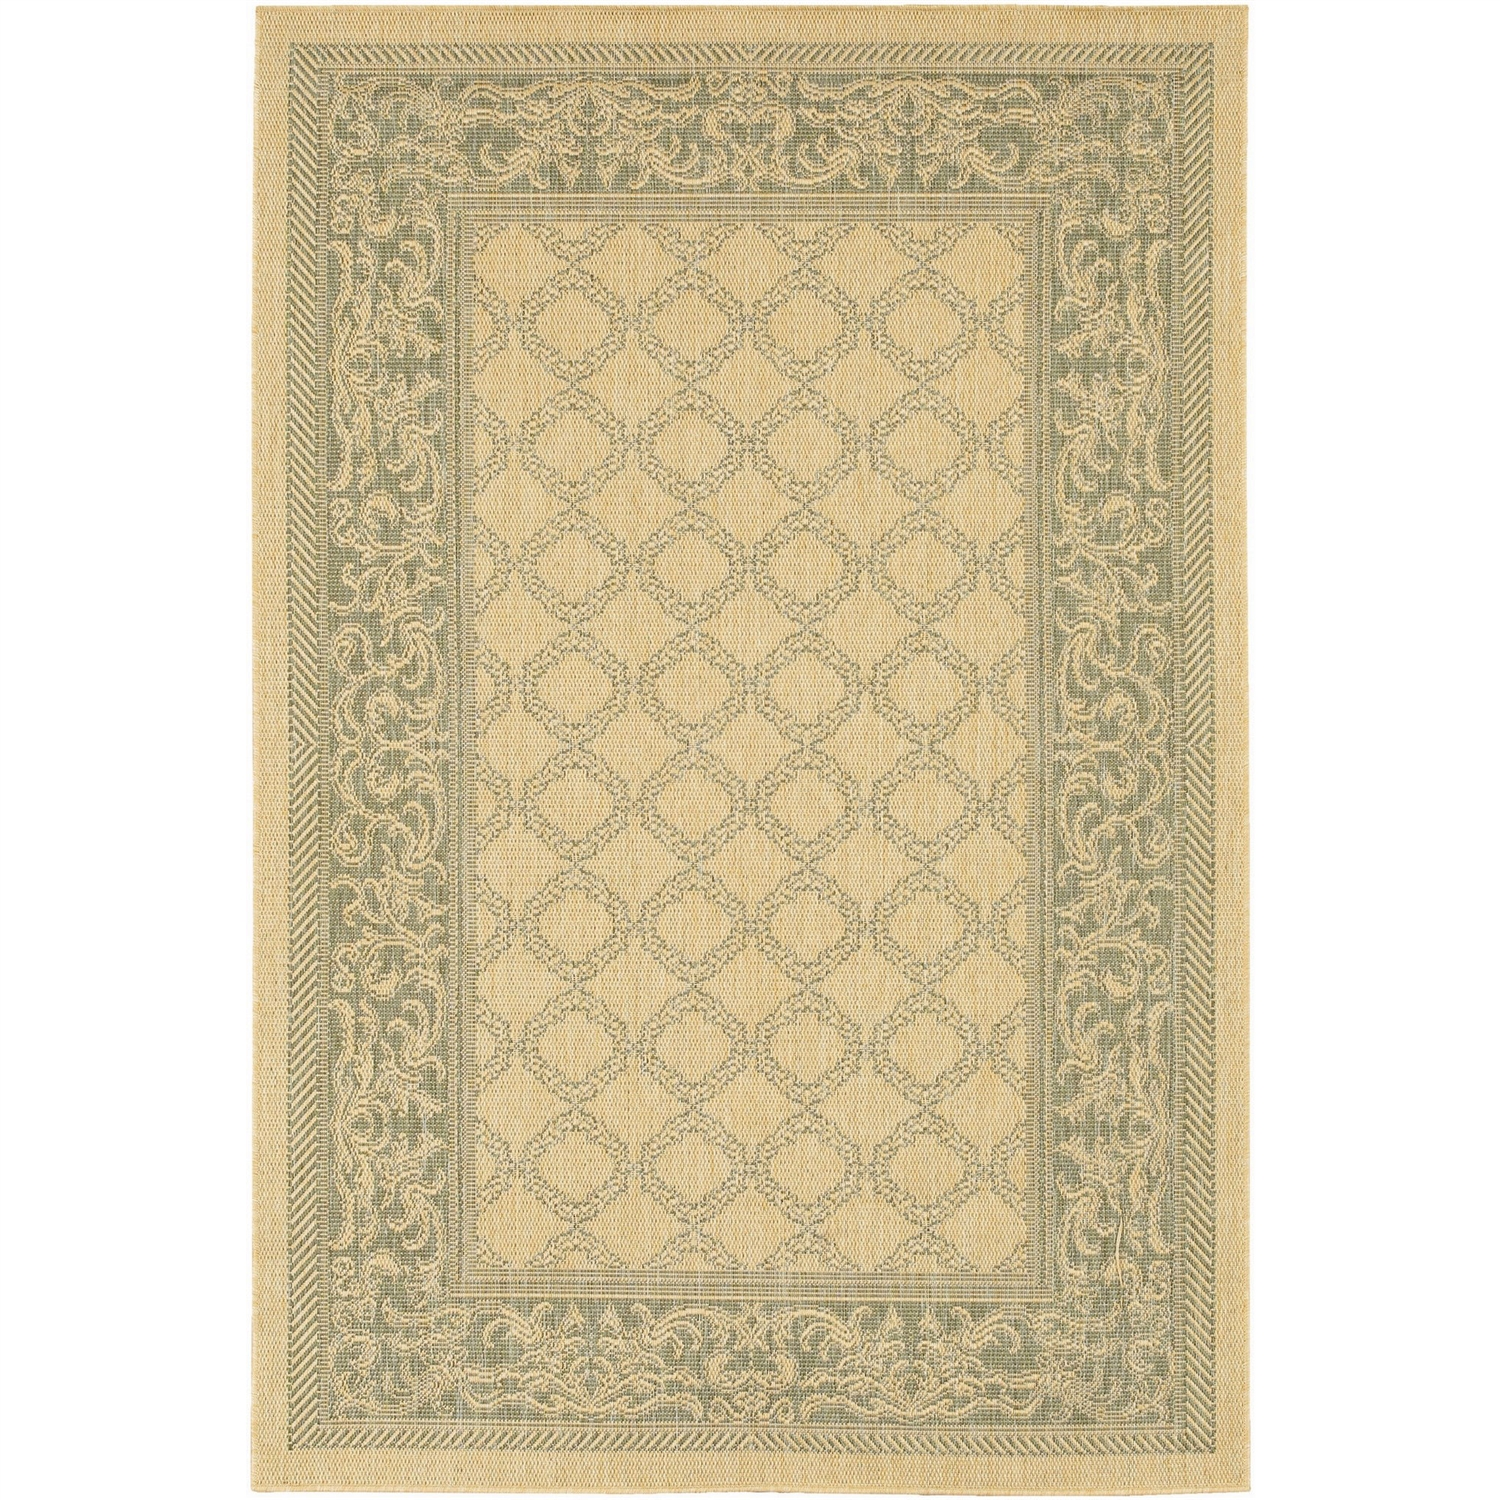 8'6 x 13' Large Indoor Outdoor Area Rug with Garden Trellis Lattice Pattern, CRGL28913 :  This 8'6 x 13' Large Indoor Outdoor Area Rug with Garden Trellis Lattice Pattern would be a great addition to your home. It is made of synthetic materials and is made in Belgium. 100% Recyclable; Construction: Machine made; Color: Natural / Green; Construction: Machine Made; Technique: Machine Woven; Primary Pattern: Geometric; Oriental; Primary Color: Natural; Border Material: Synthetic; Border Color: Natural. Material Details: Polypropylene; Reversible: No; Rug Pad Needed: Yes; Water Resistant: Yes; Mildew Resistant: Yes; Eco-Friendly: No. Product Care: Vacuum frequently. Have professionally cleaned when needed. Country of Manufacture: Belgium; Product Warranty: 1 year limited warranty.